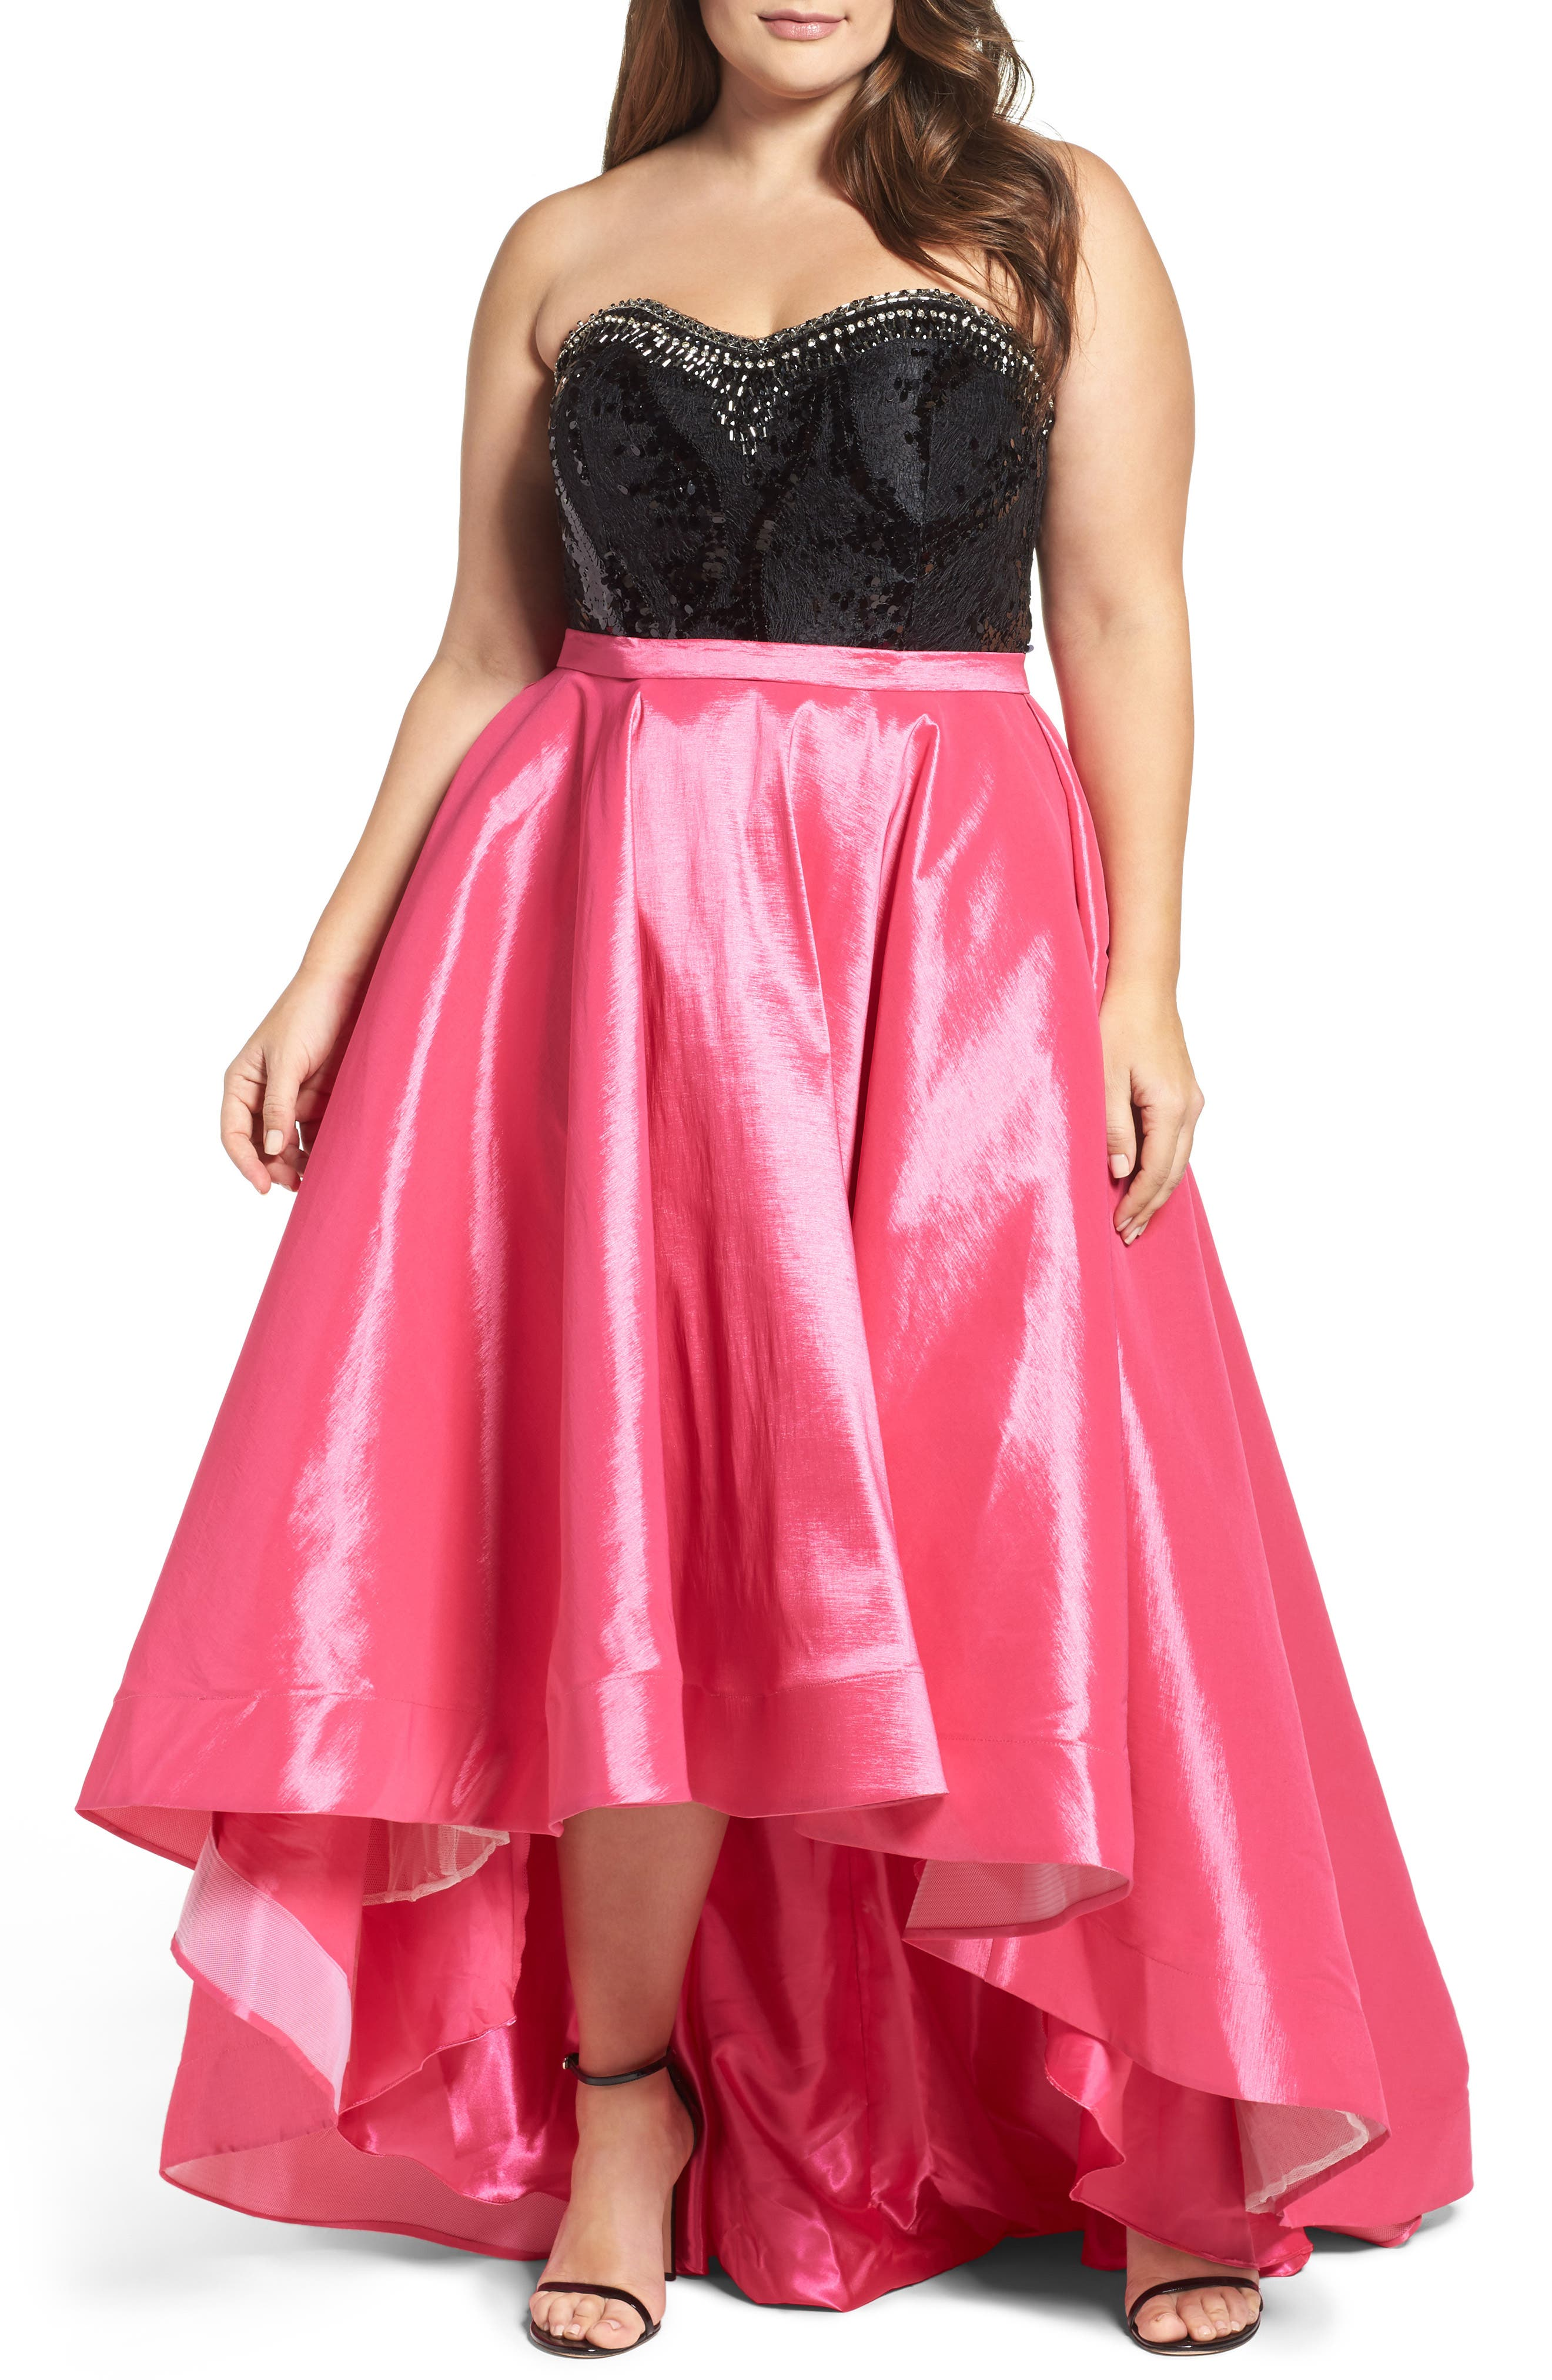 Embellished Lace & Taffeta Strapless High/Low Gown,                             Main thumbnail 1, color,                             Hot Pink/ Black